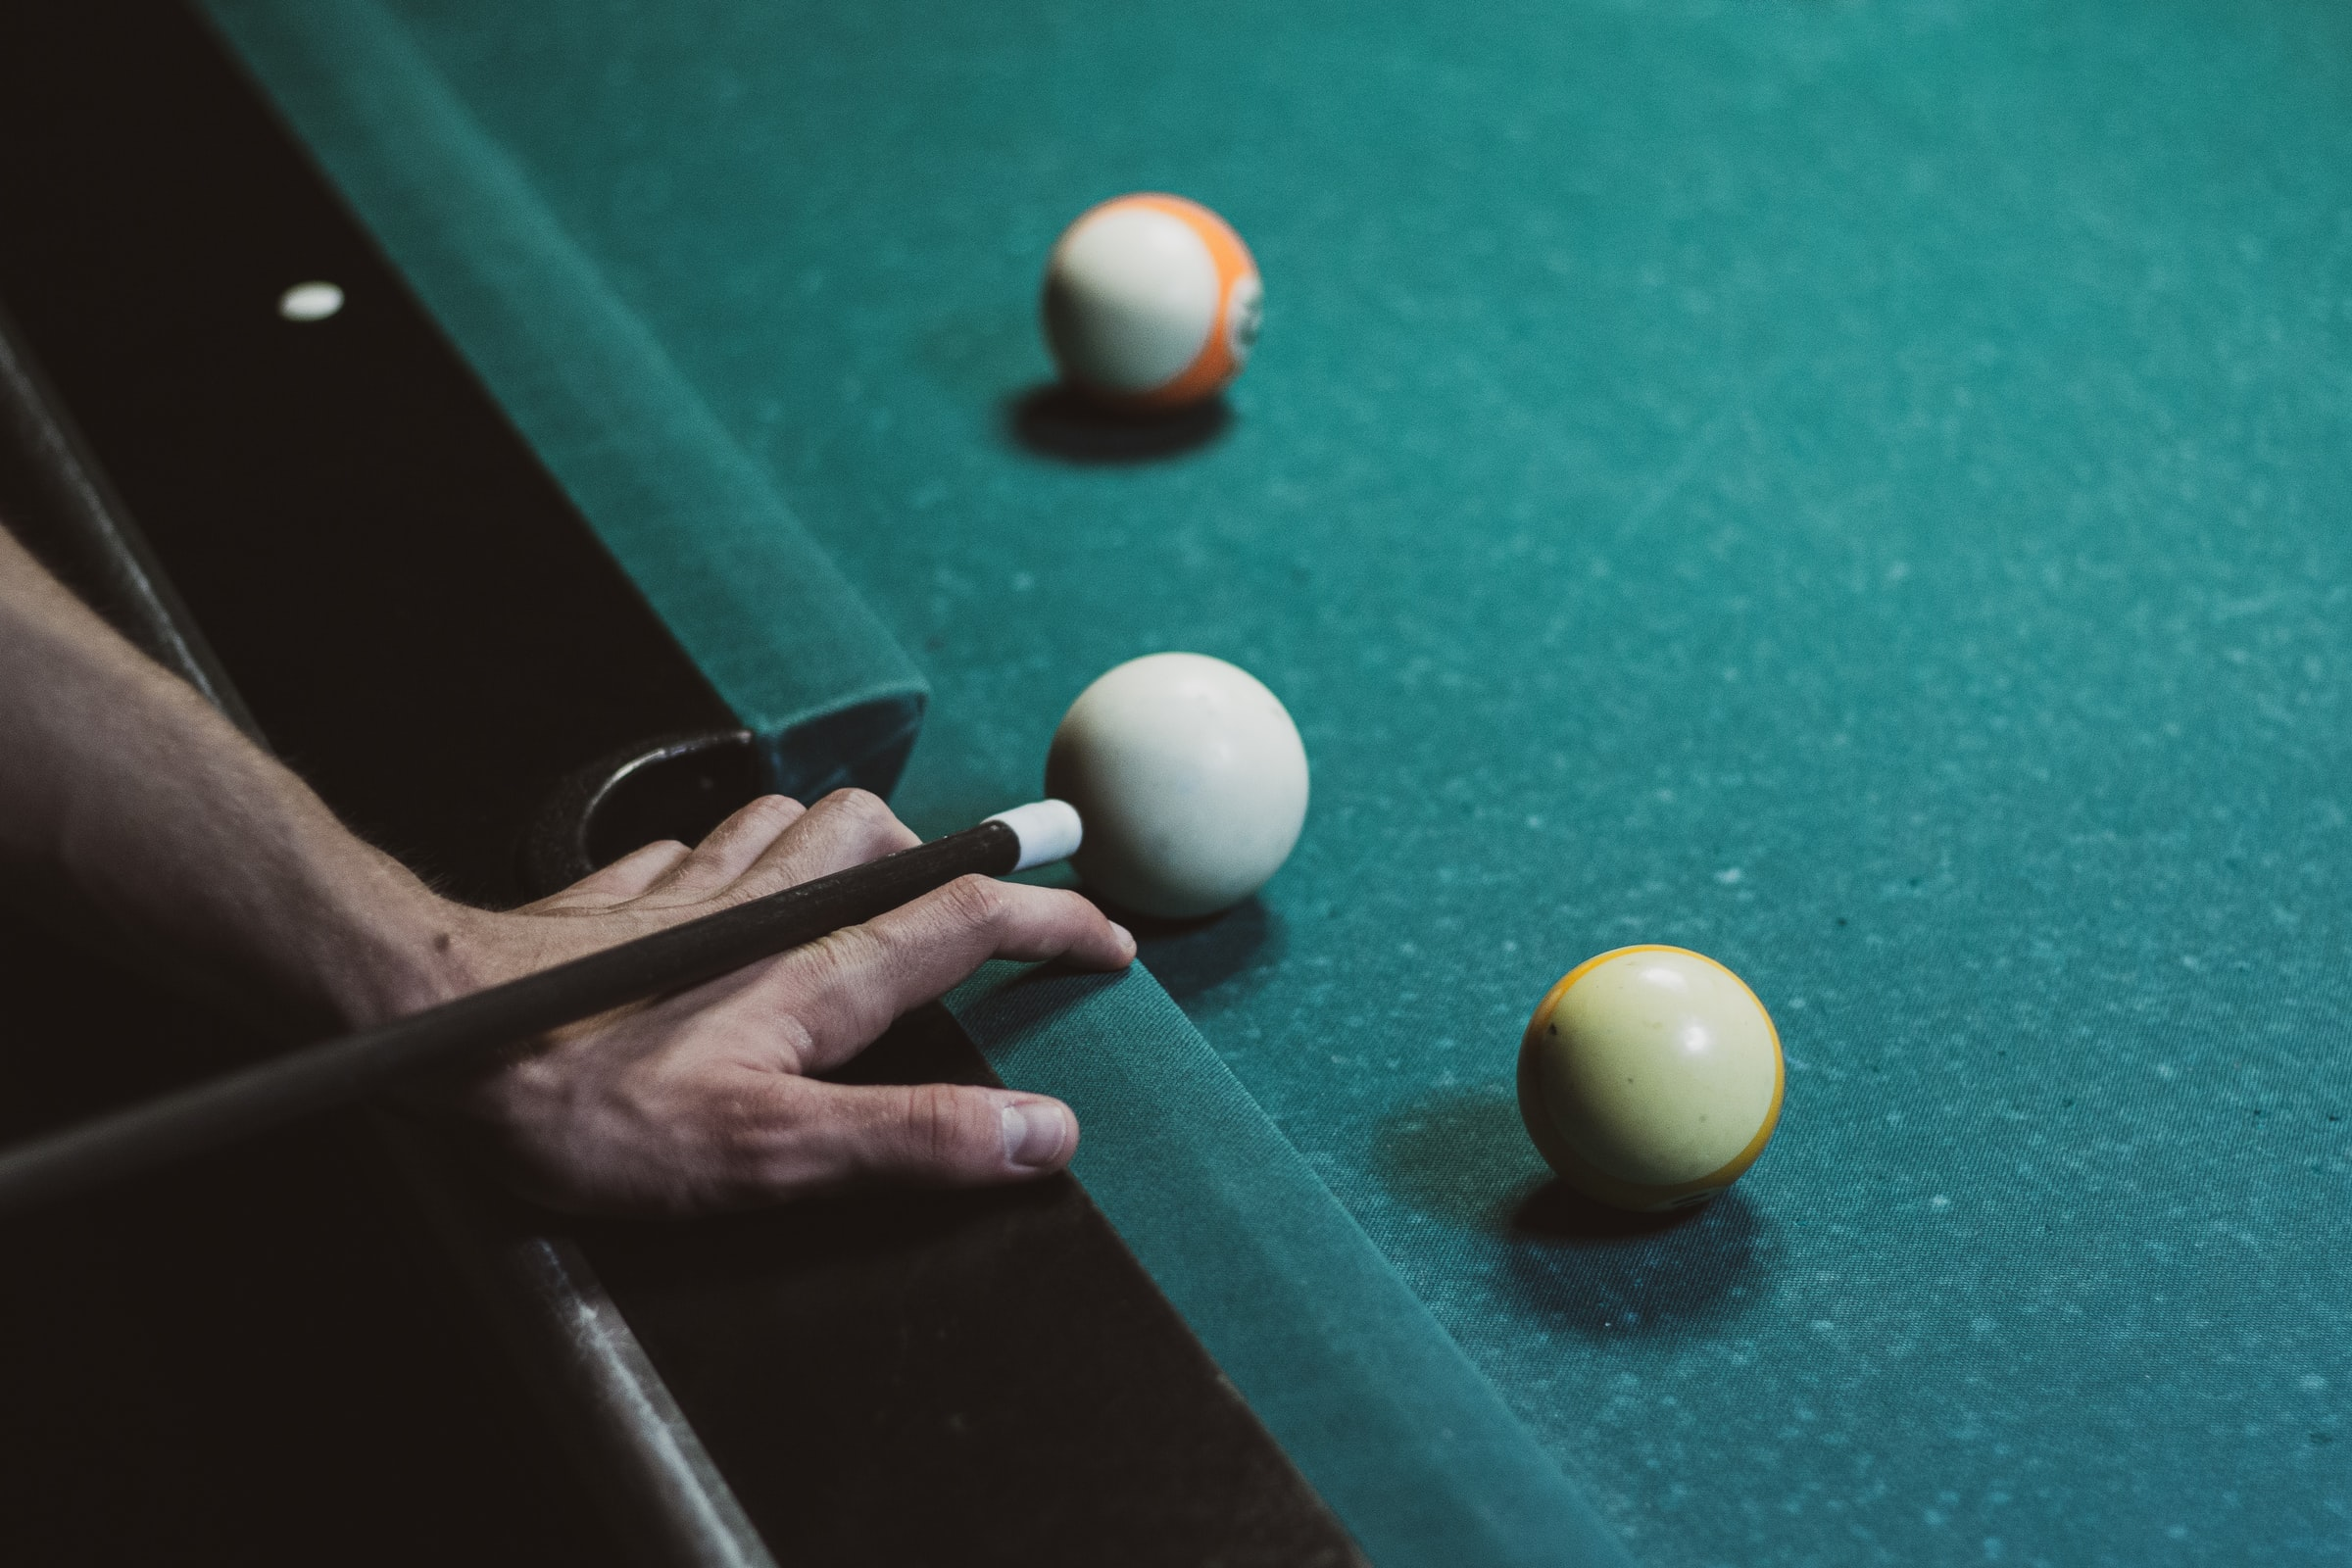 Hand aiming the cue ball